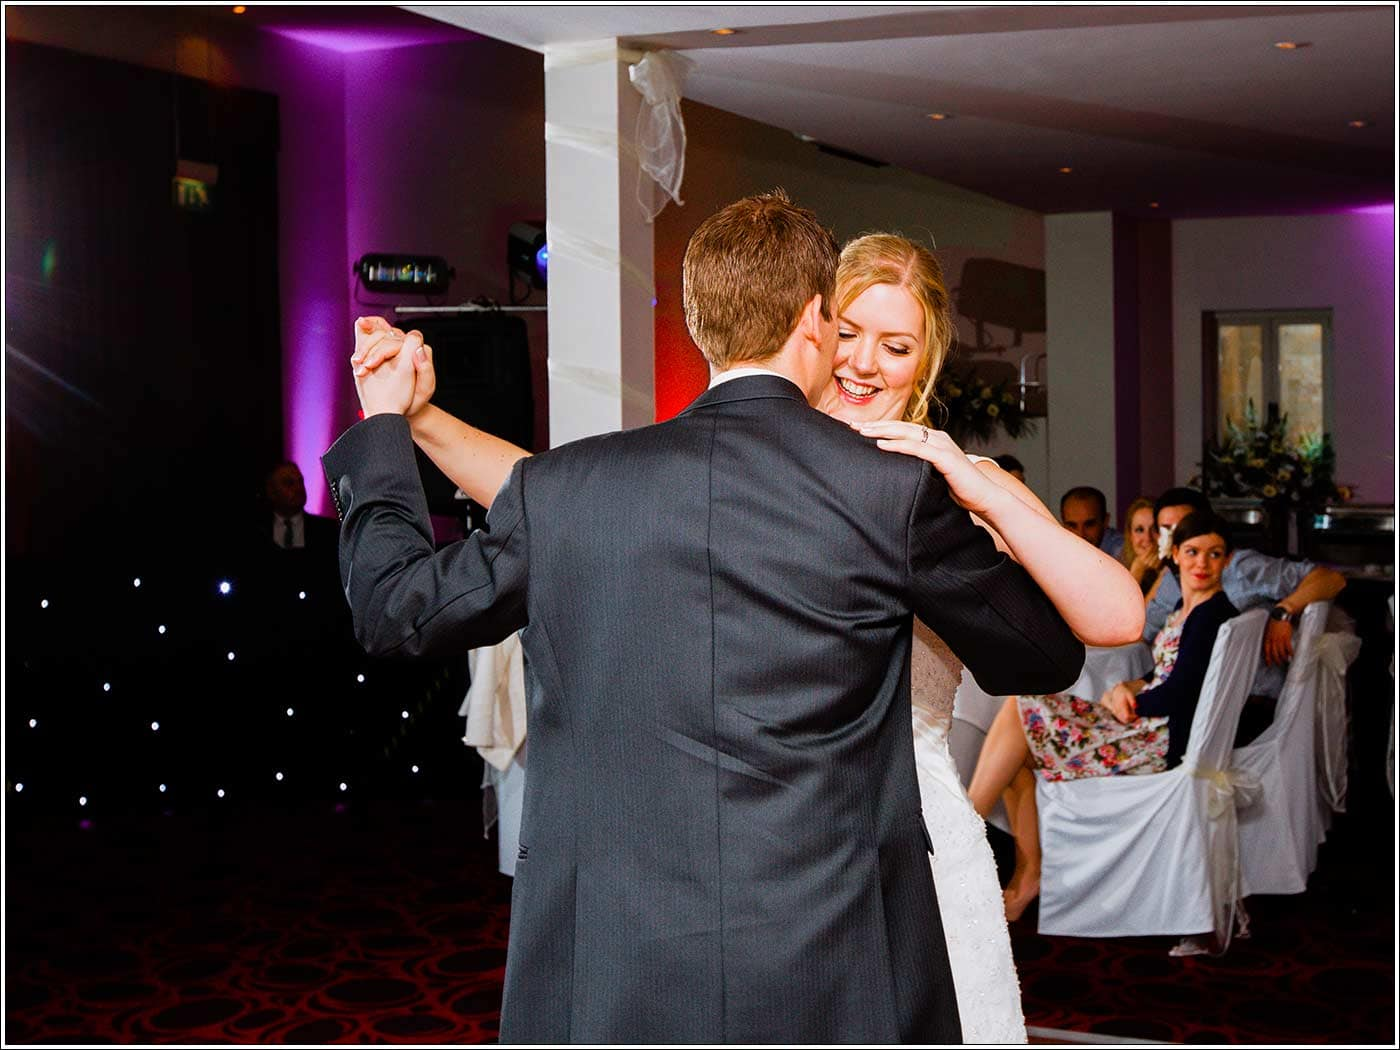 Smiling bride during first dance at Walton Hall